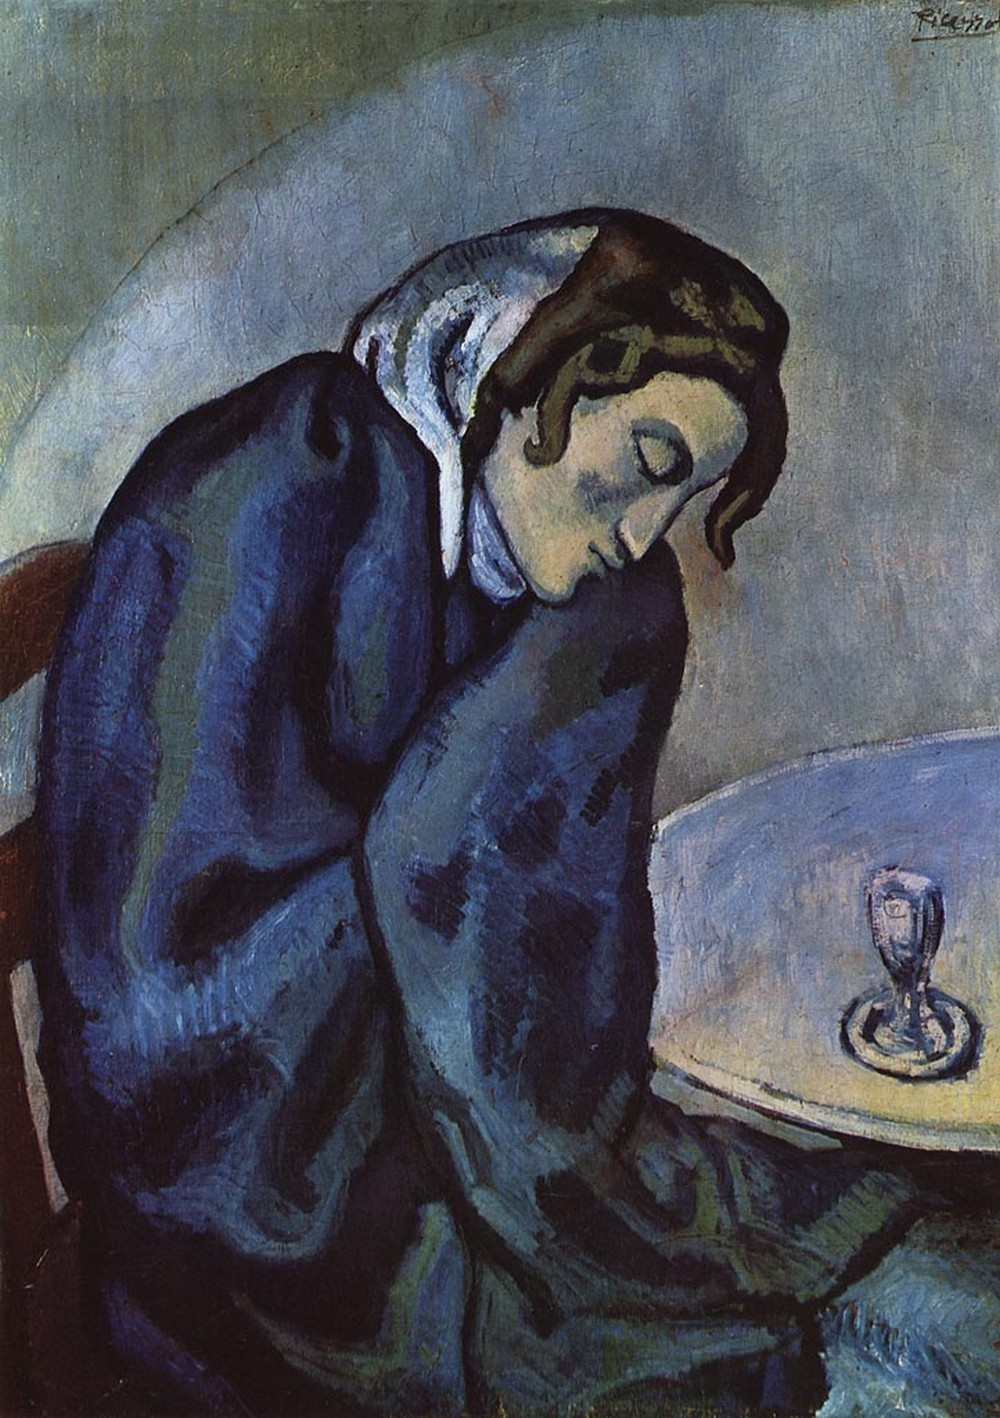 8. Pablo Picasso, The Absinthe Drinker, 1902